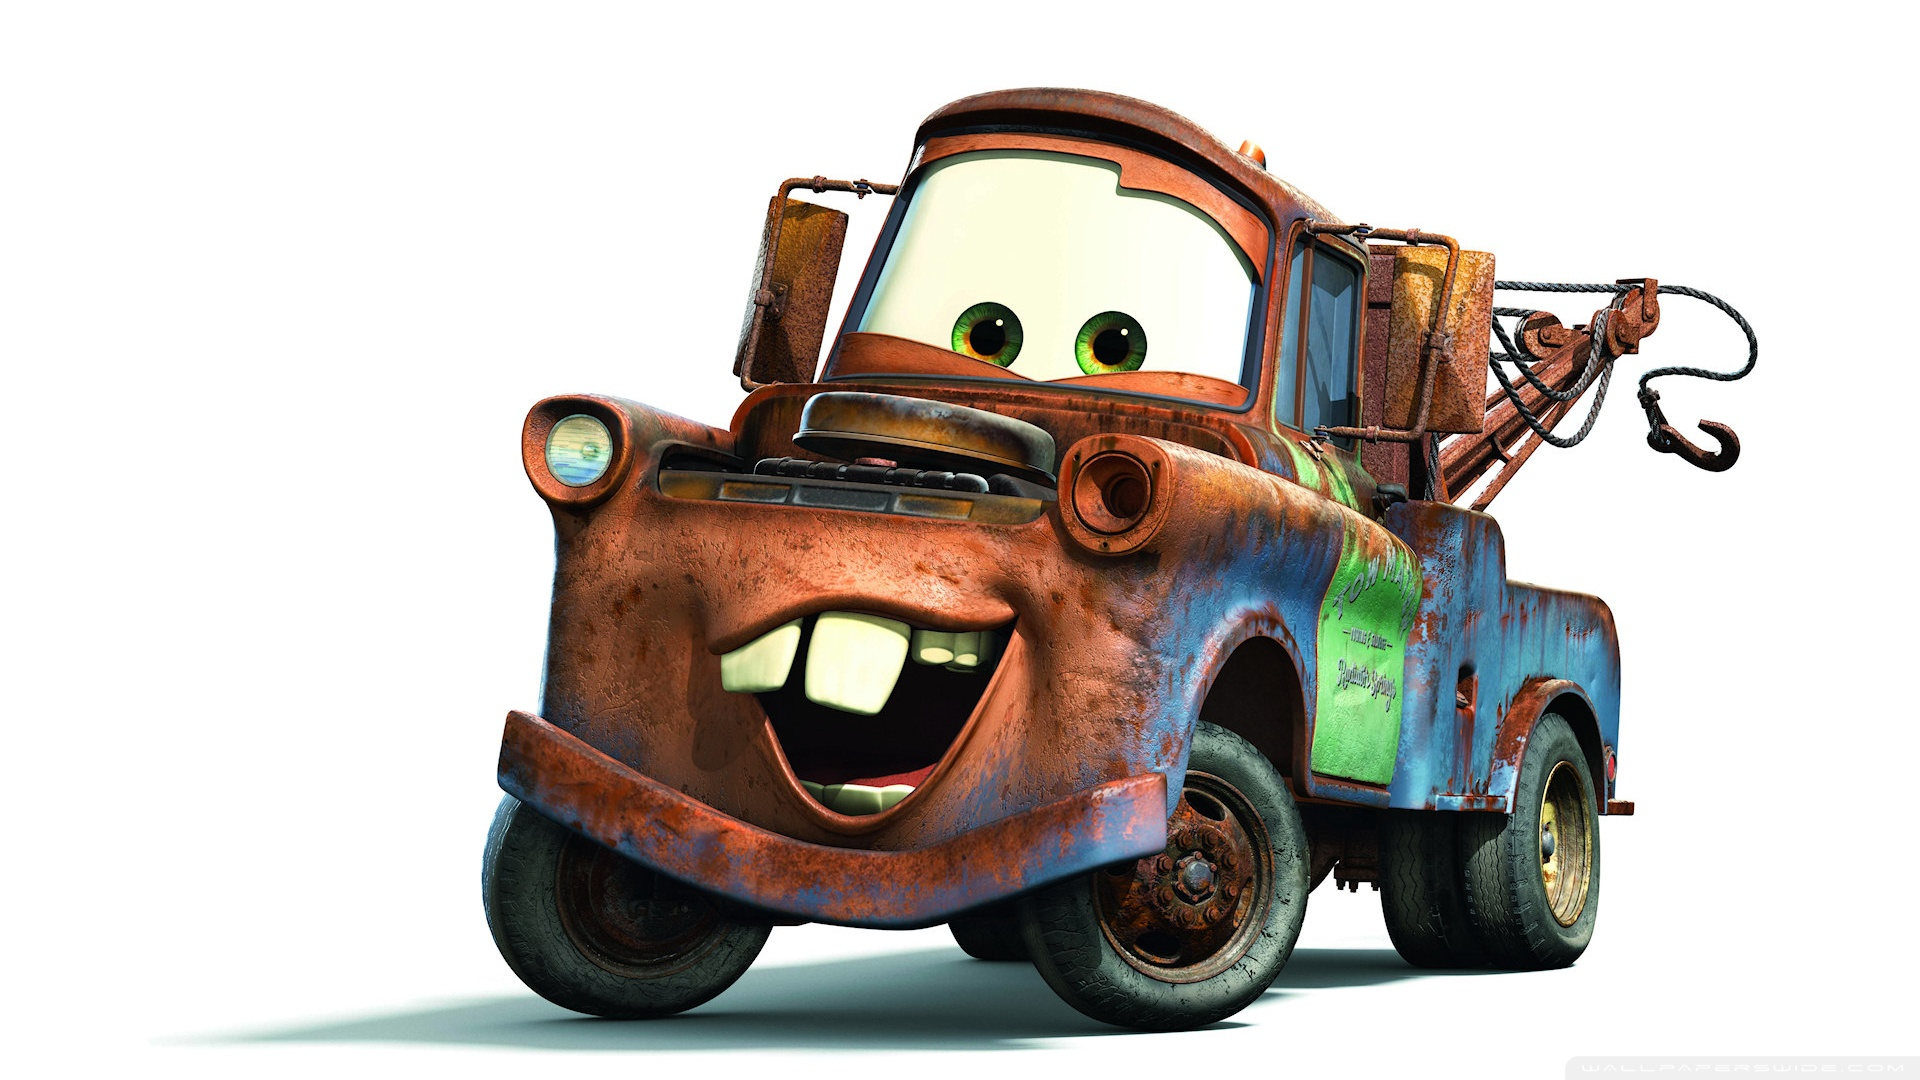 cars-movie-Cars-Movie-Tow-Mater-Hd-Widescreen-High-with-1920x1080-wallpaper-wpc5803298